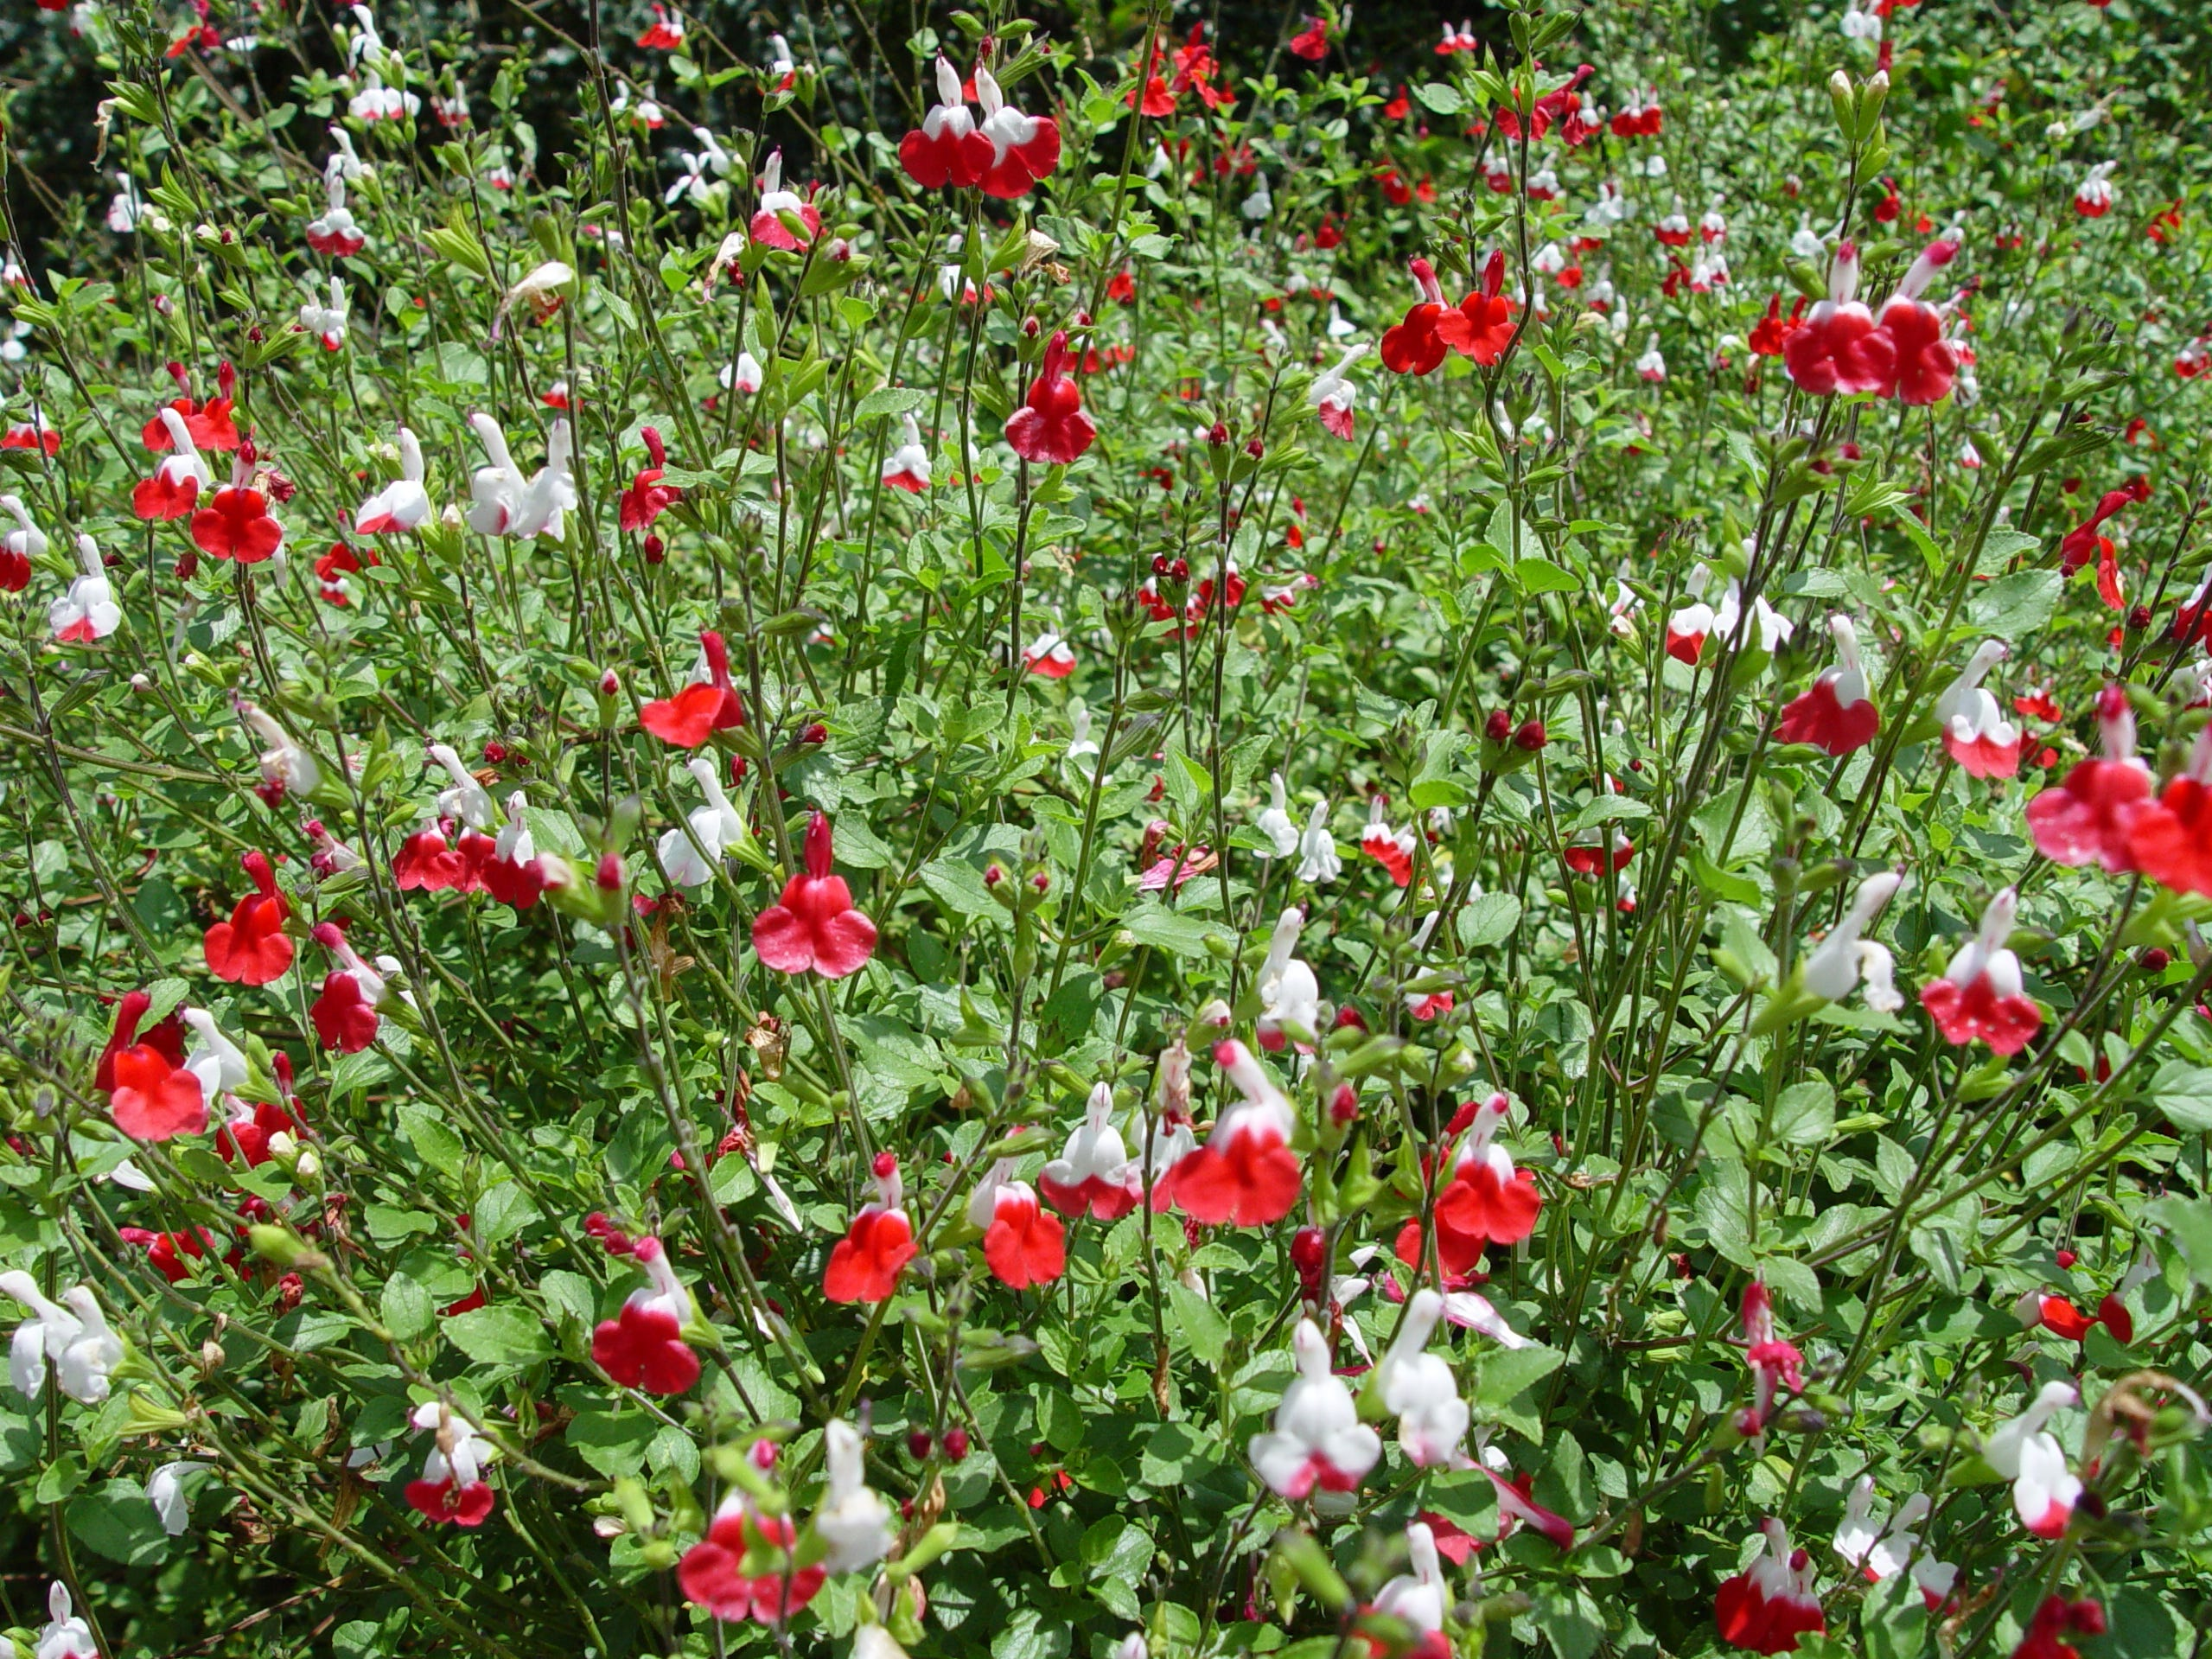 With so many different colored hybrids, the original red Salvia greggii has expanded beyond the native.